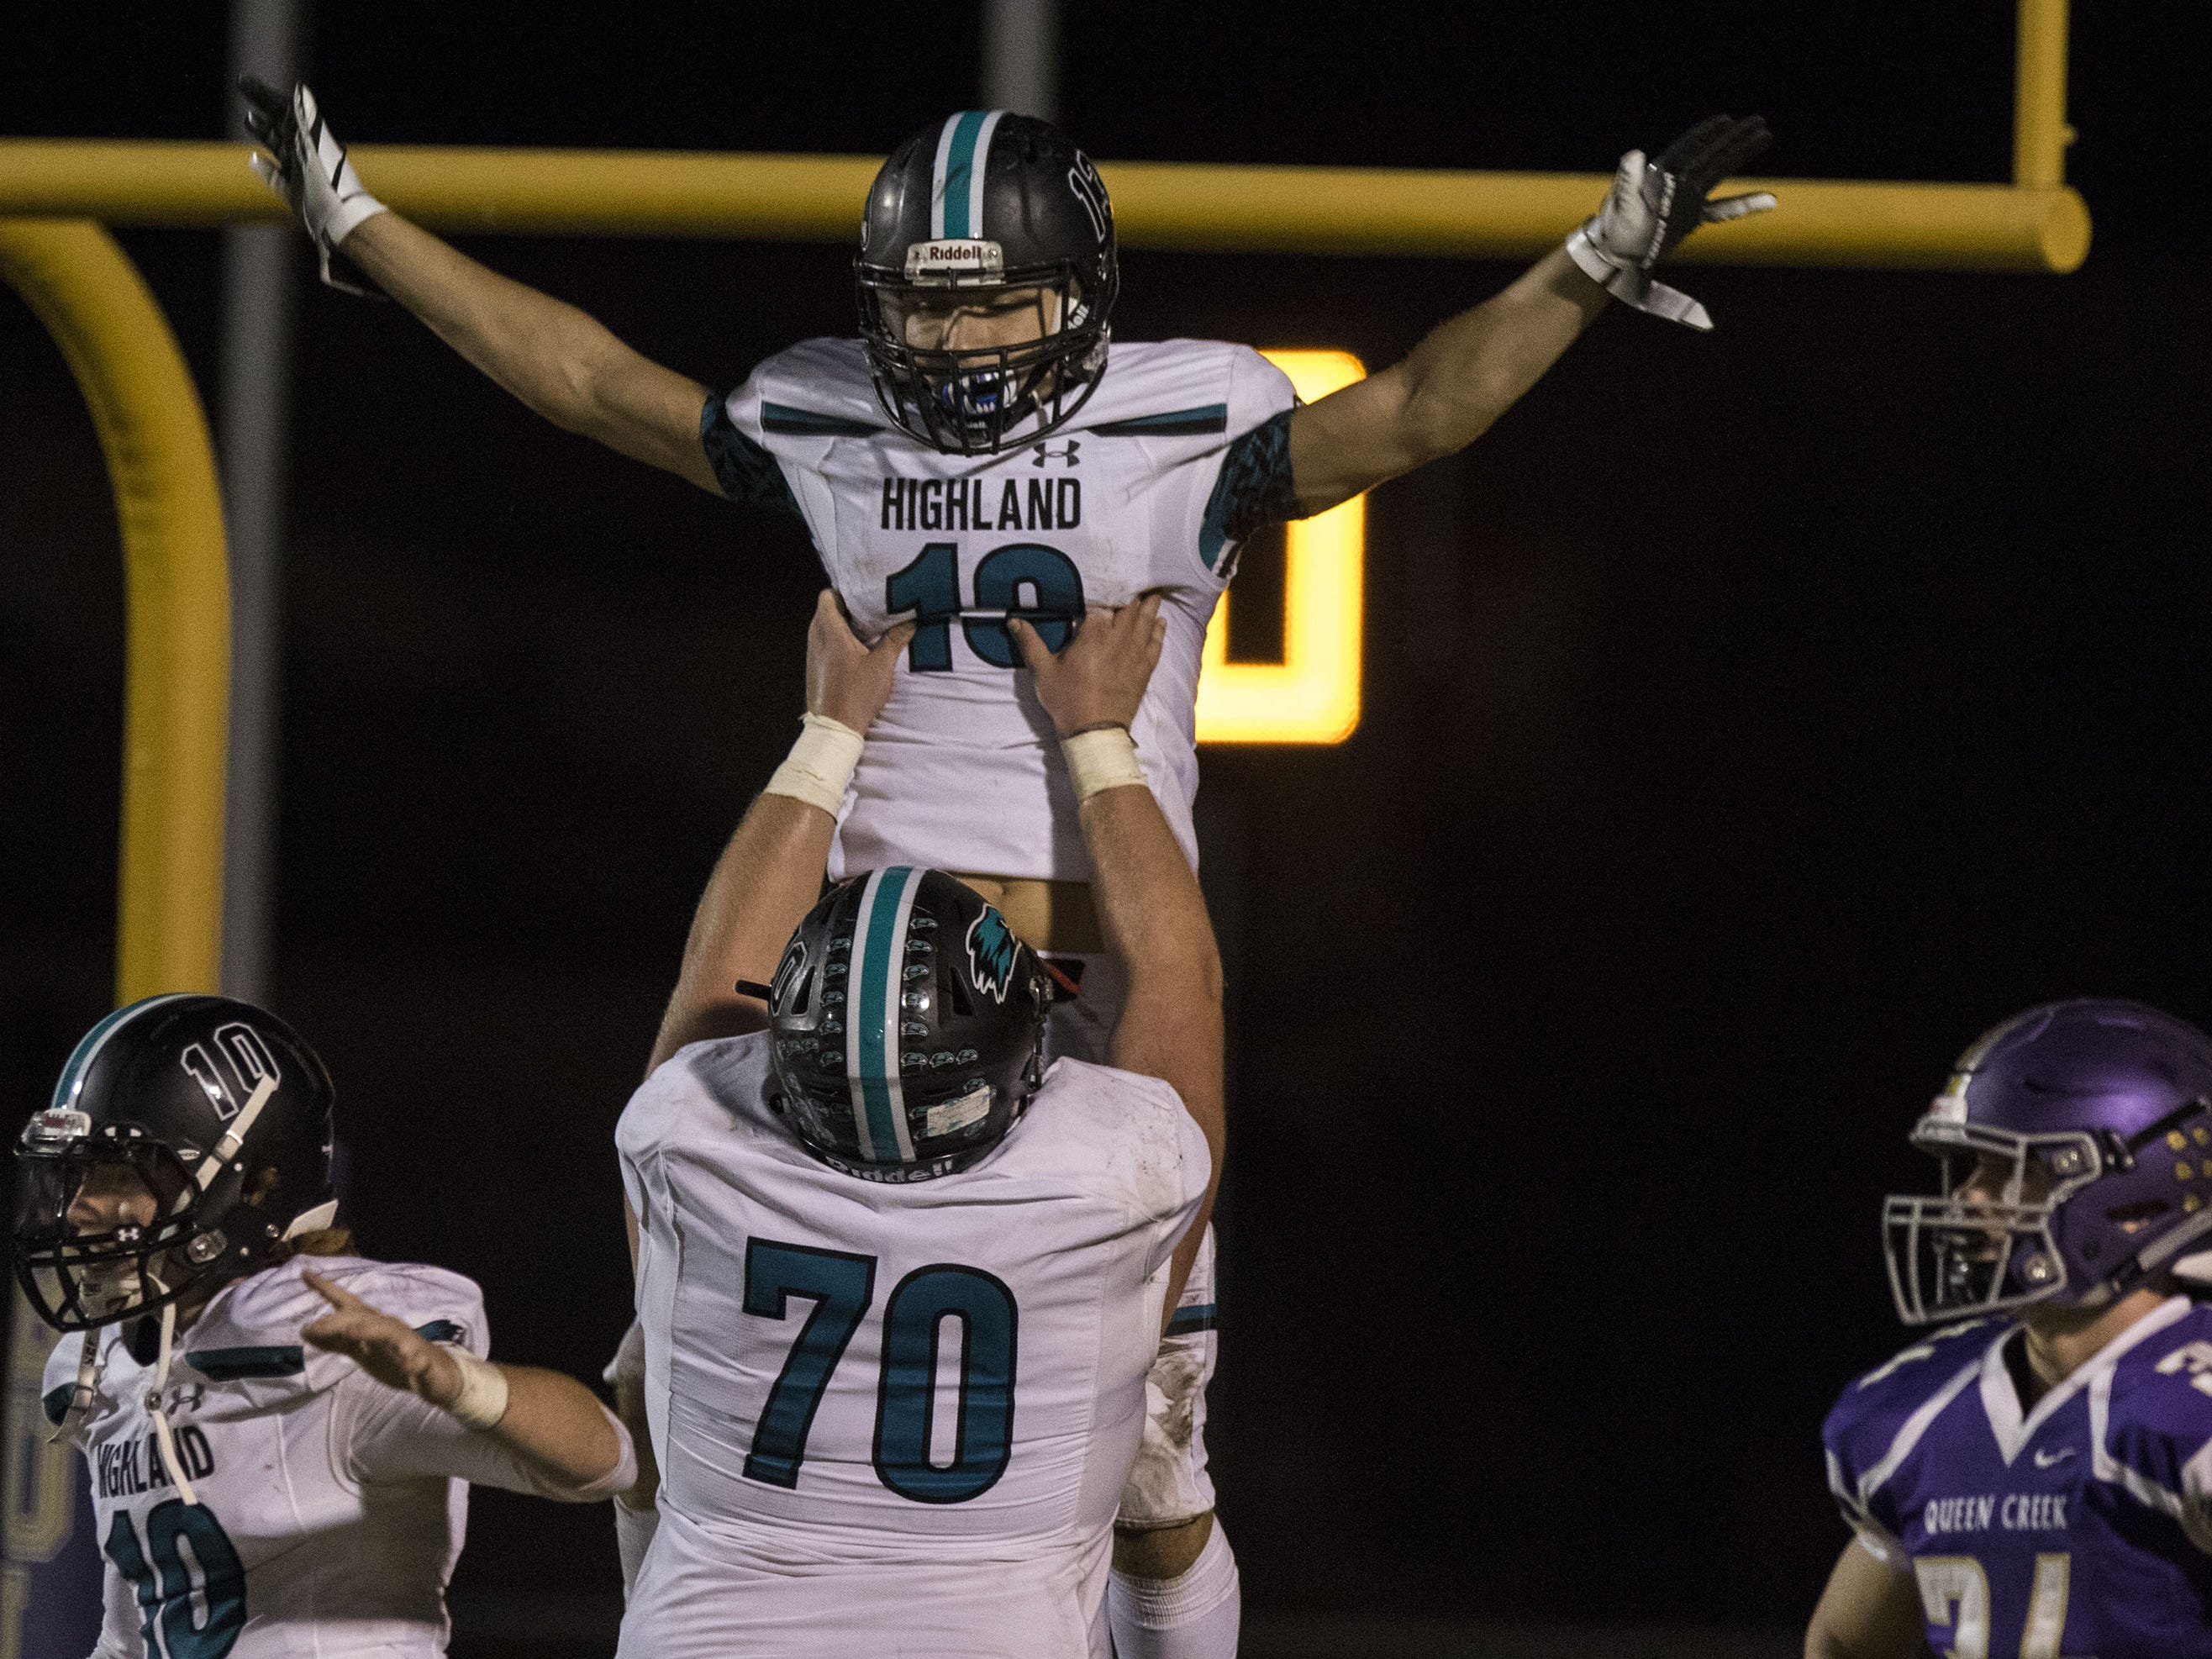 Highland's Cody Zimmerman gets lifted in the air by lineman Caleb Allen after scoring a touchdown against Queen Creek during their game Friday, Oct. 19, 2018. #azhsfb